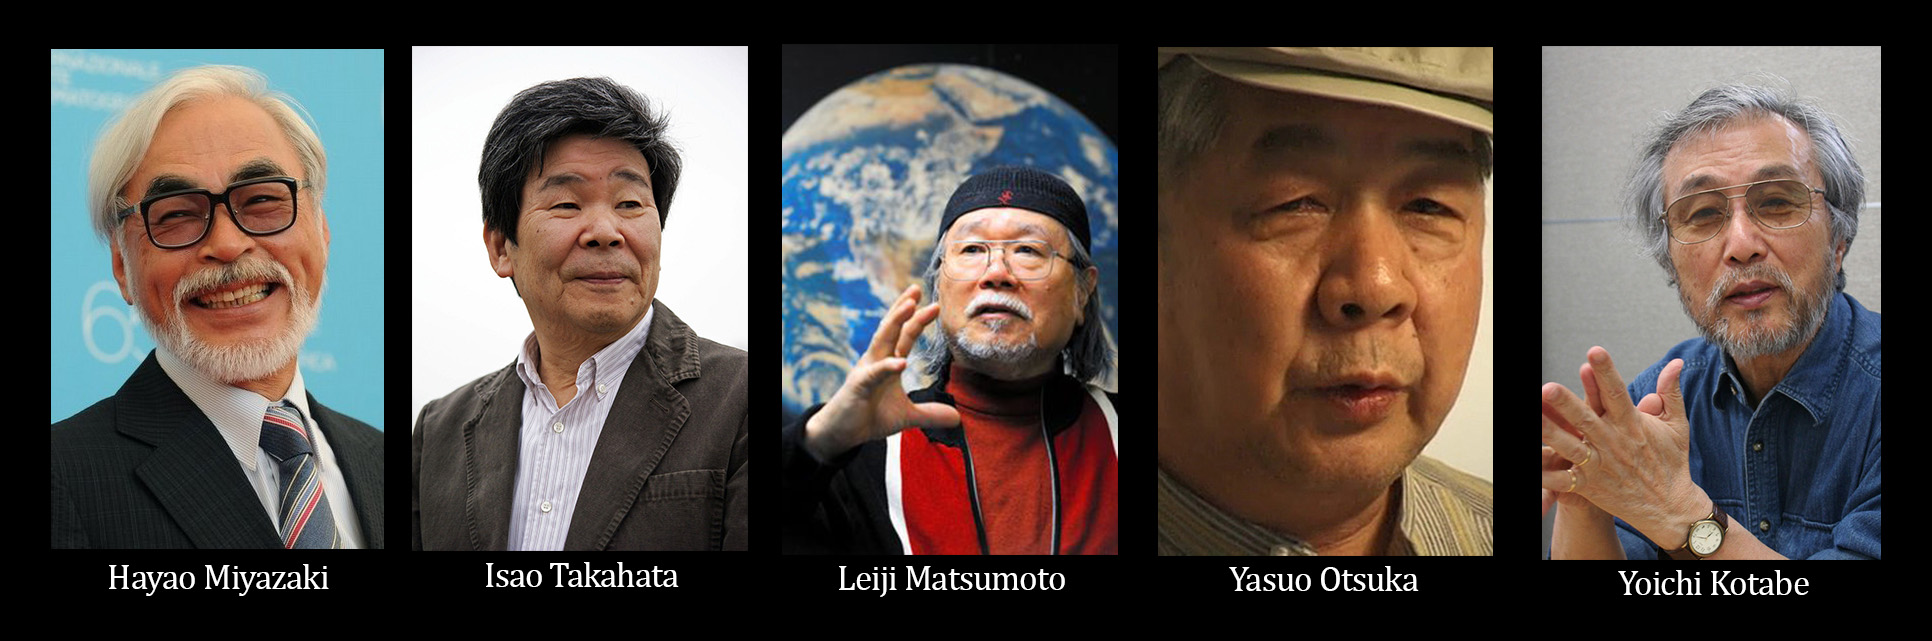 2. Toei Big Names